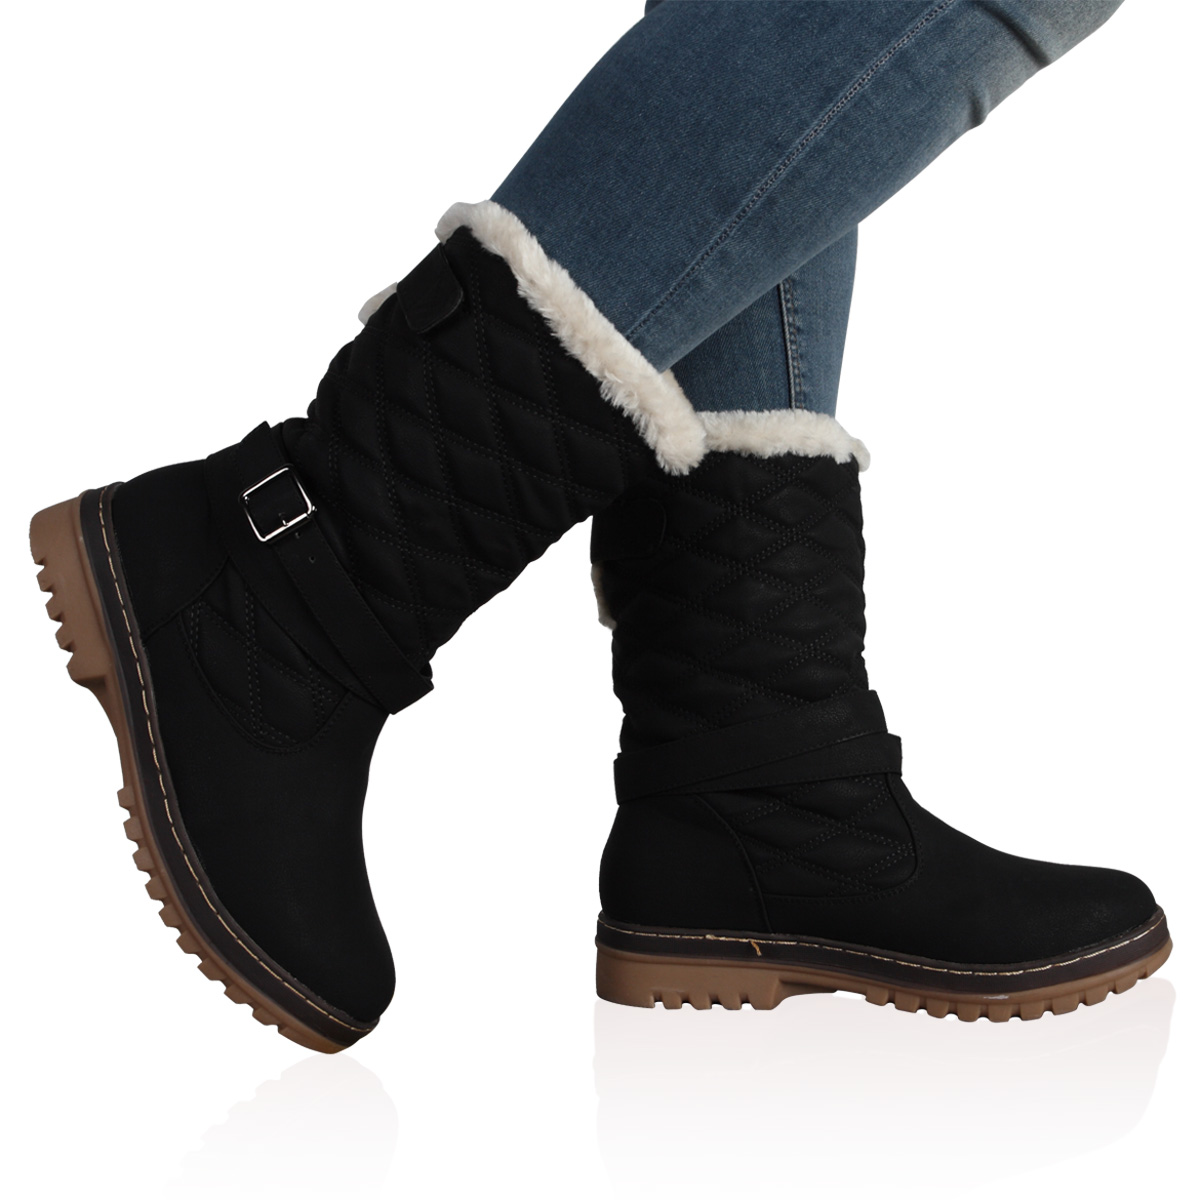 DD15 WOMENS QUILTED LADIES FAUX FUR GRIP SOLE WINTER SNOW BOOTS ...